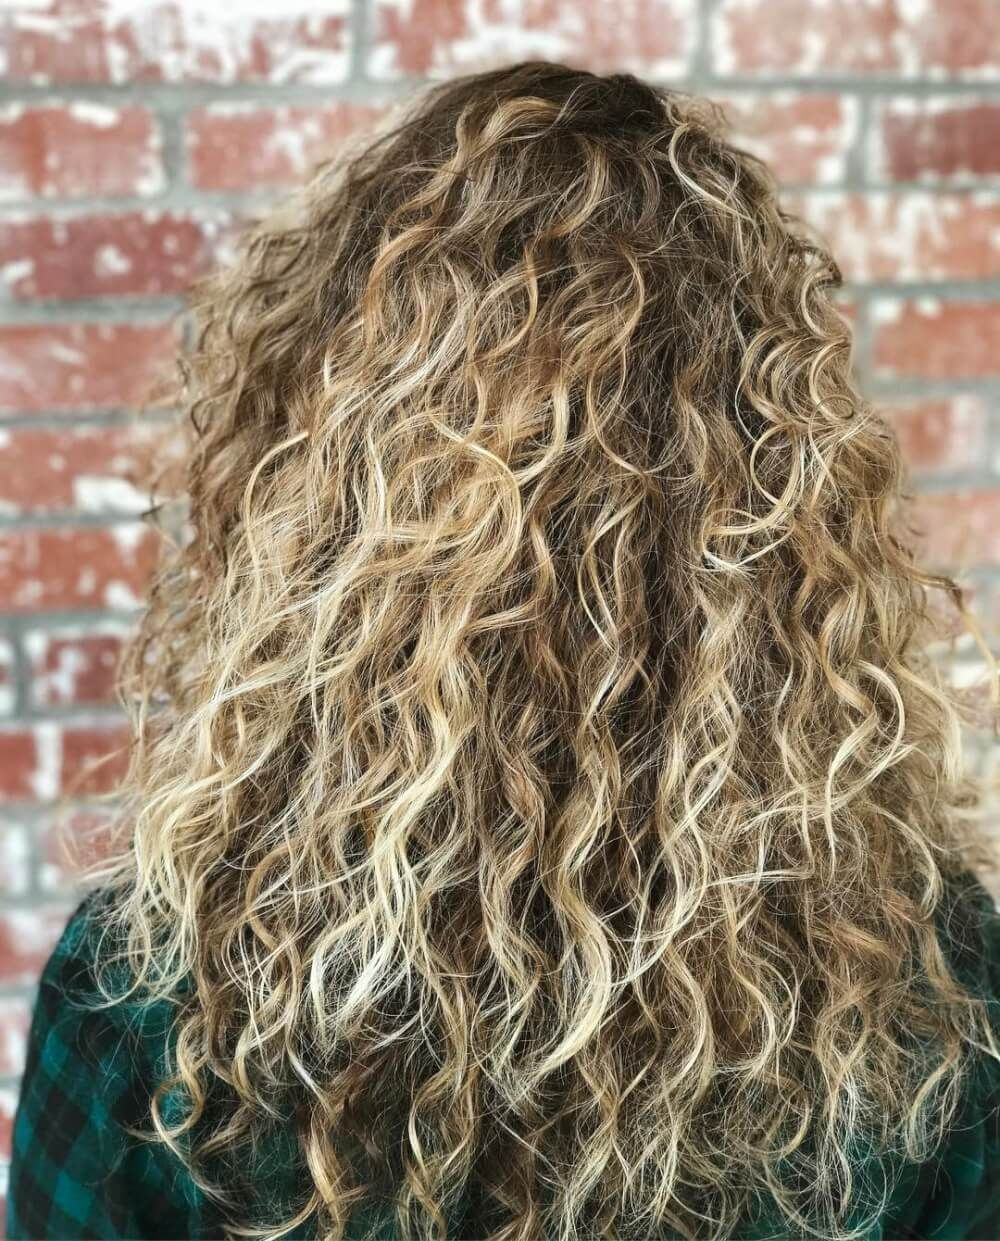 Brown dark curly hair with blonde highlights recommendations dress in summer in 2019